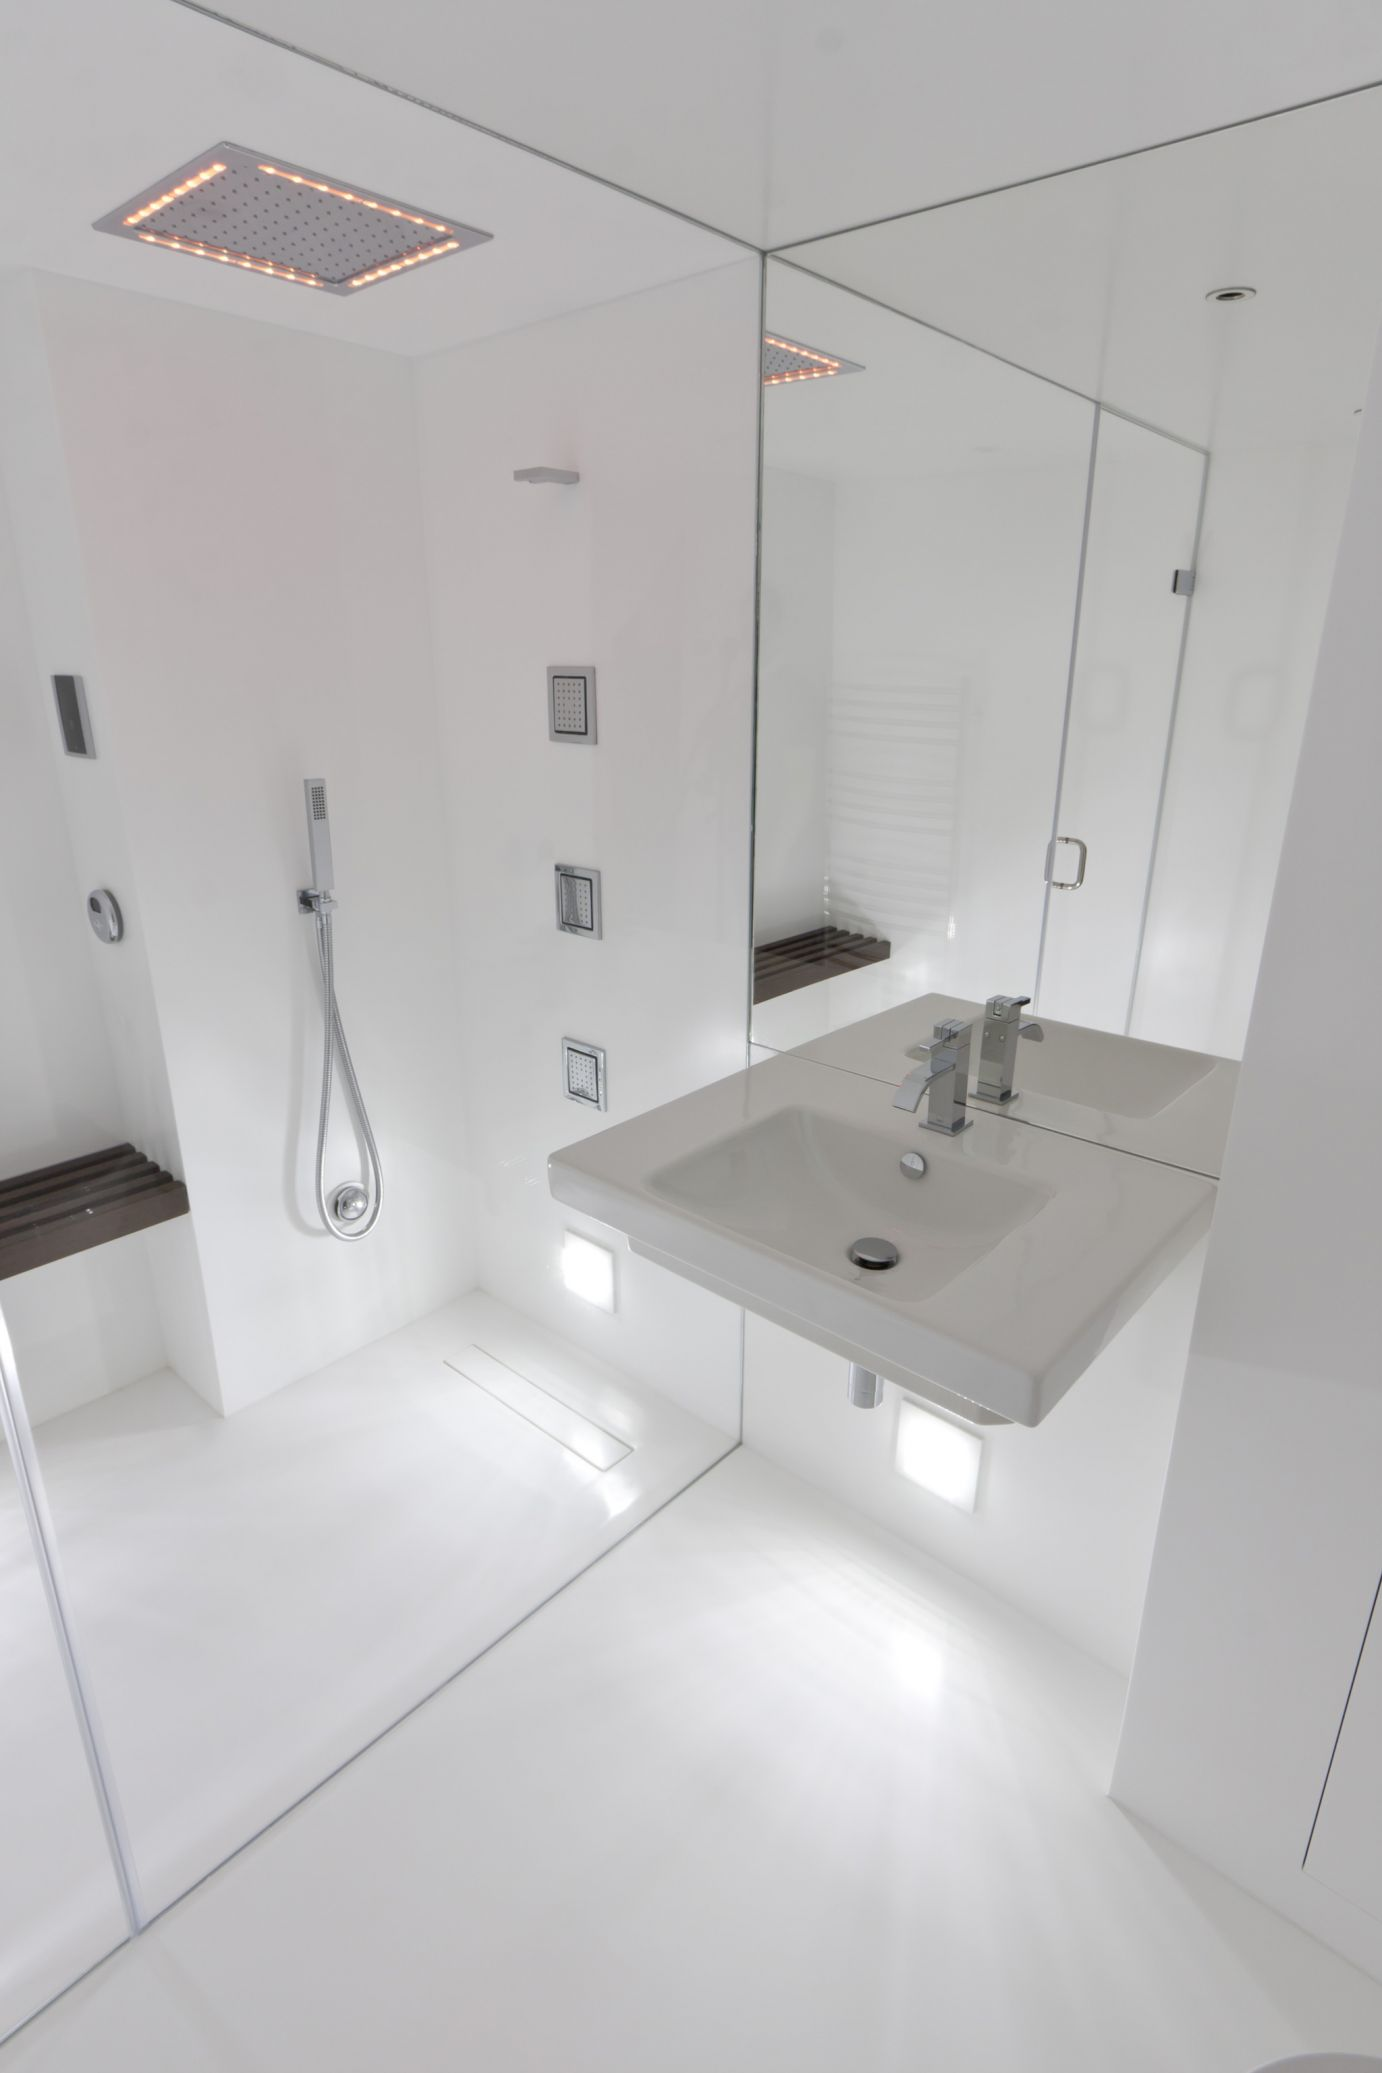 Wetroom floors solidity solidity solid surface steam room dailygadgetfo Choice Image